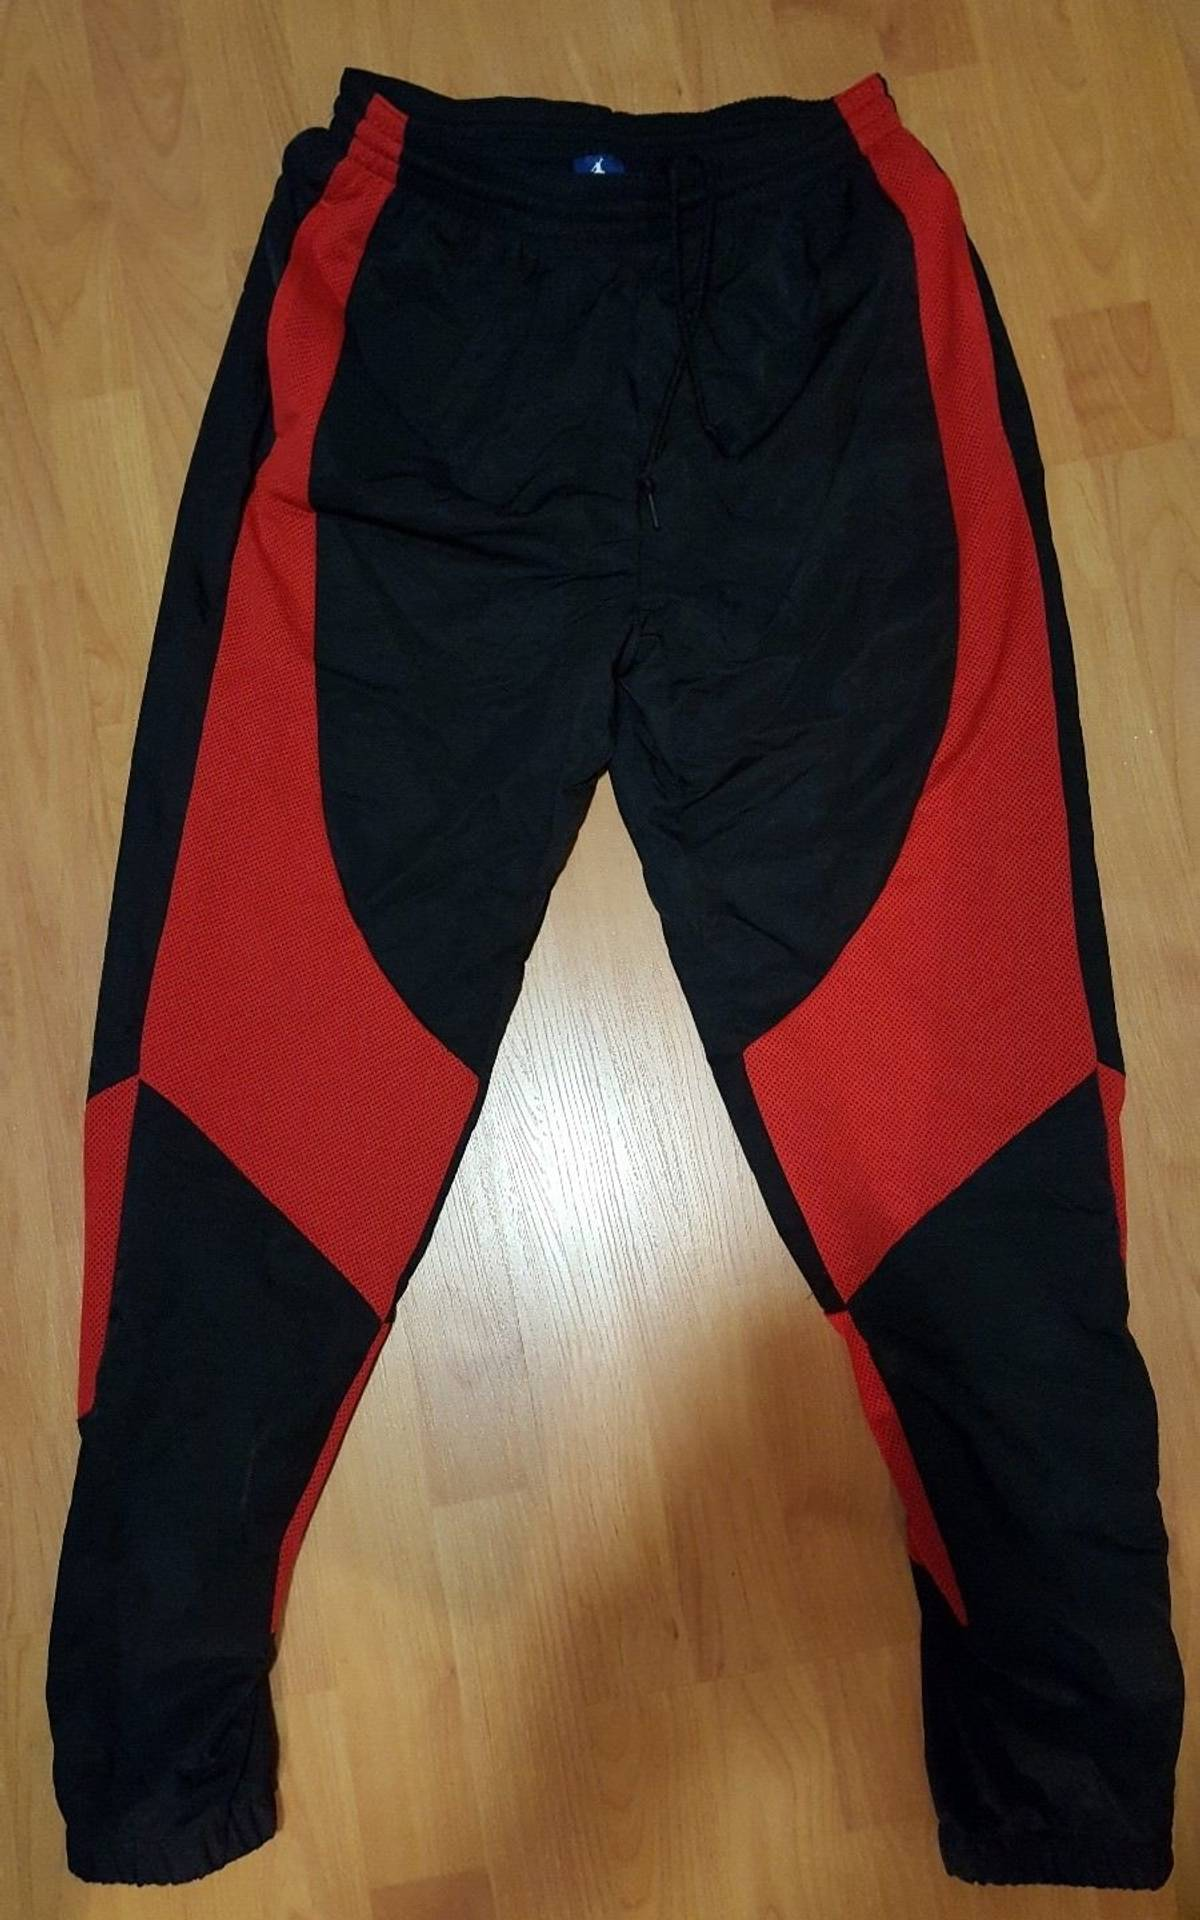 27c2777aacb70c Jordan Brand AIR JORDAN 1 WINGS WOVEN PANTS Size 34 - Sweatpants ...